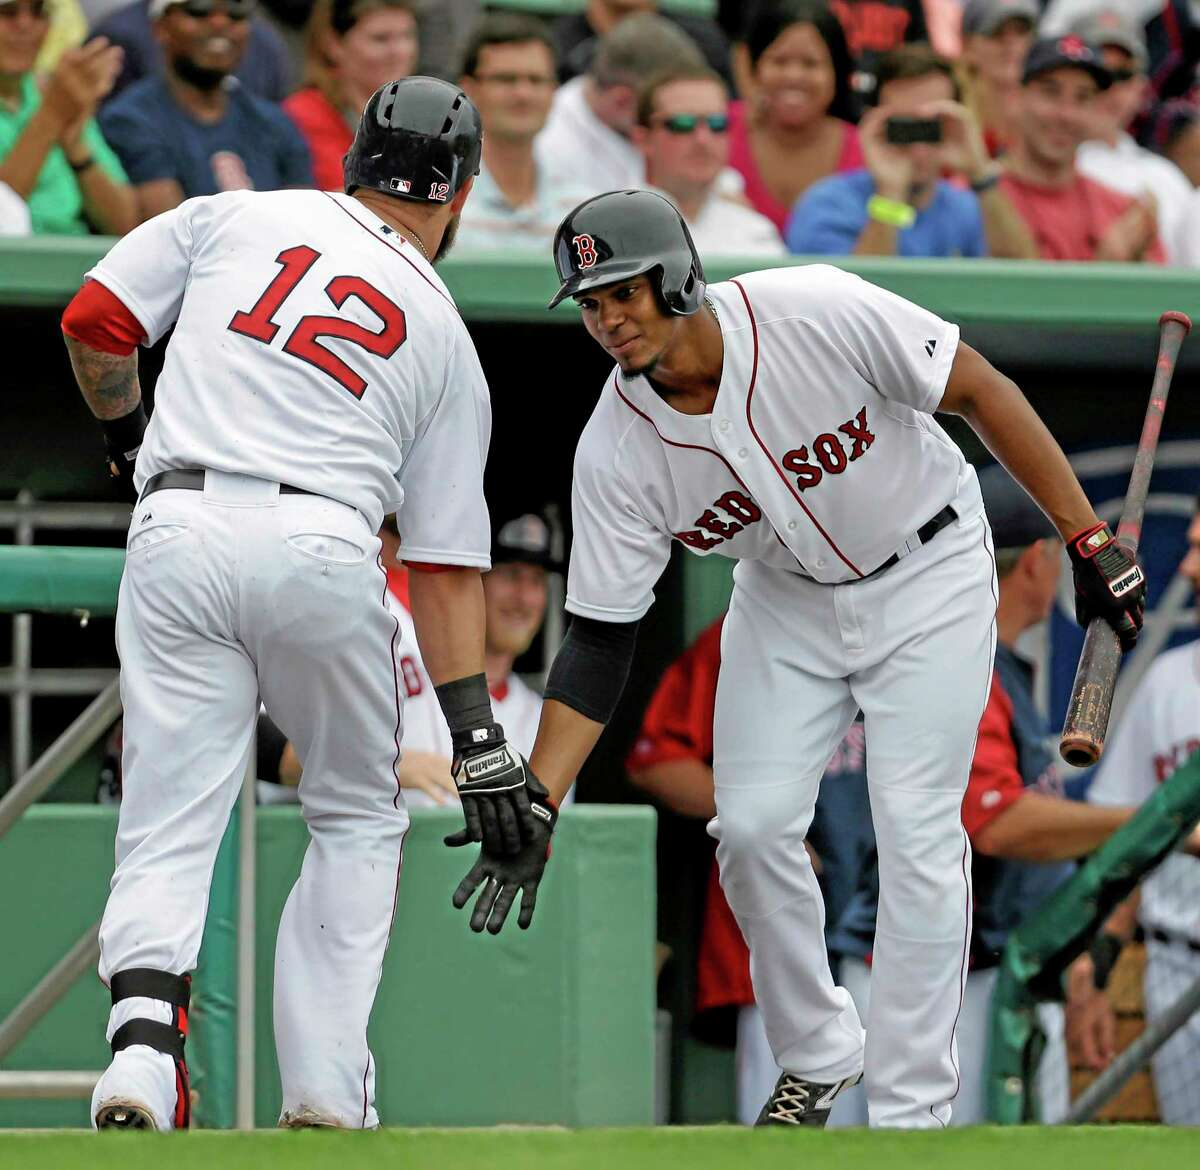 Boston Red Sox shortstop Xander Bogaerts greets first baseman Mike Napoli (12) after Napoli's solo home run during a spring training game against on Saturday. Bogaerts is the second-ranked prospect in baseball.